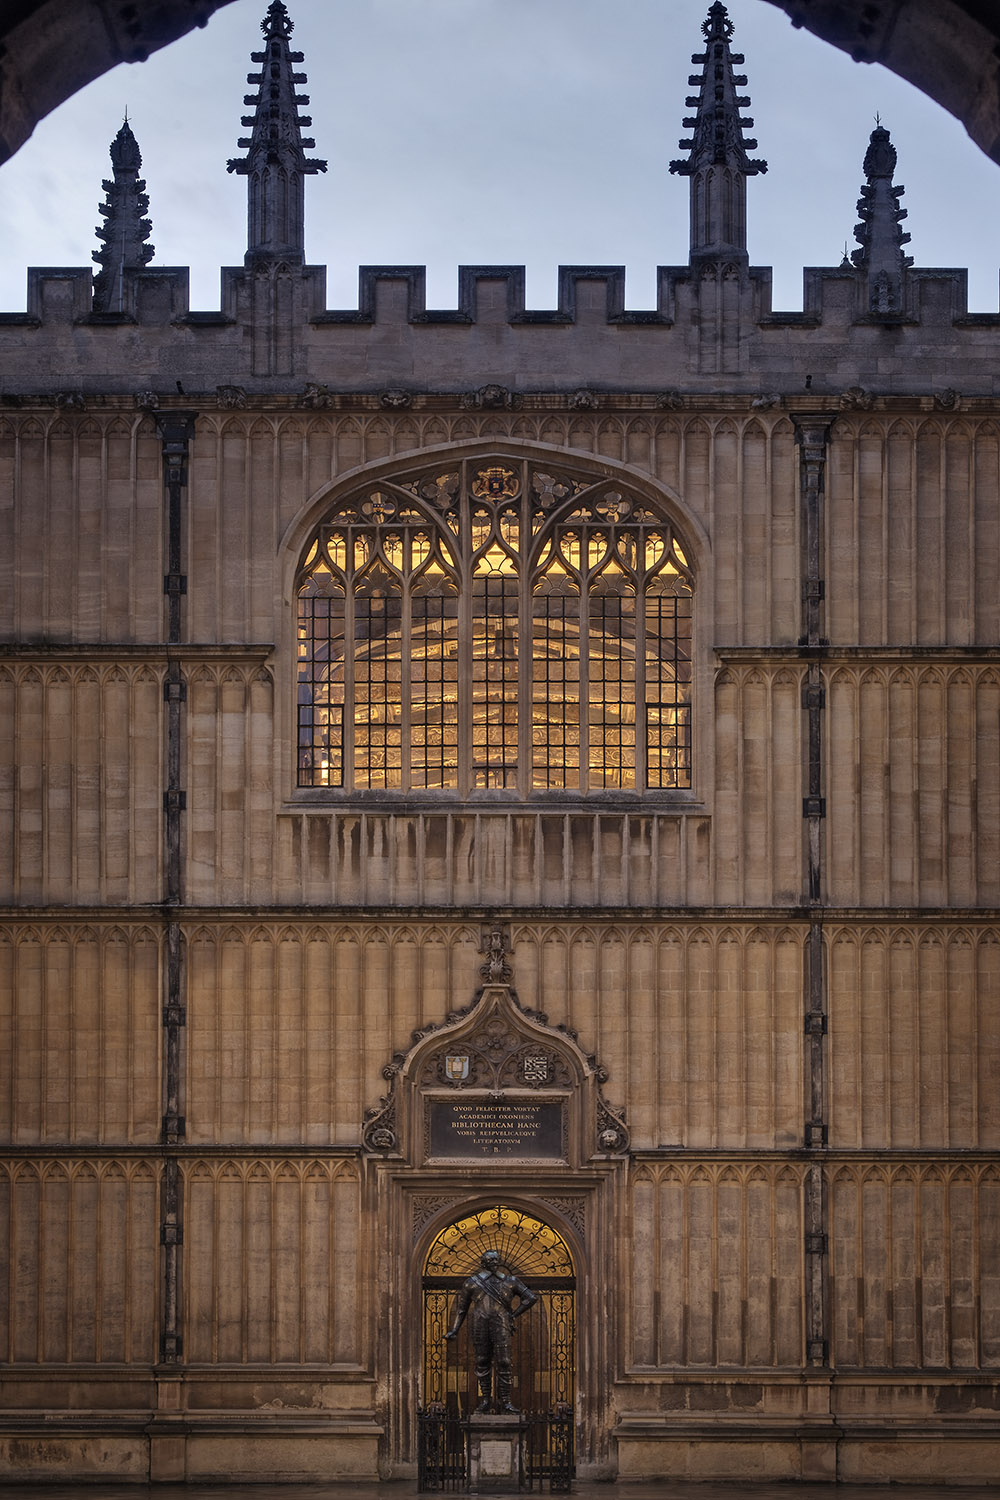 Photography by Dan Paton showcasing the new lighting installation by Urban Jungle and Oxford University Estates in Duke Humfrey's Library - the oldest part of the Bodleian Library, University of Oxford, Oxford, UK